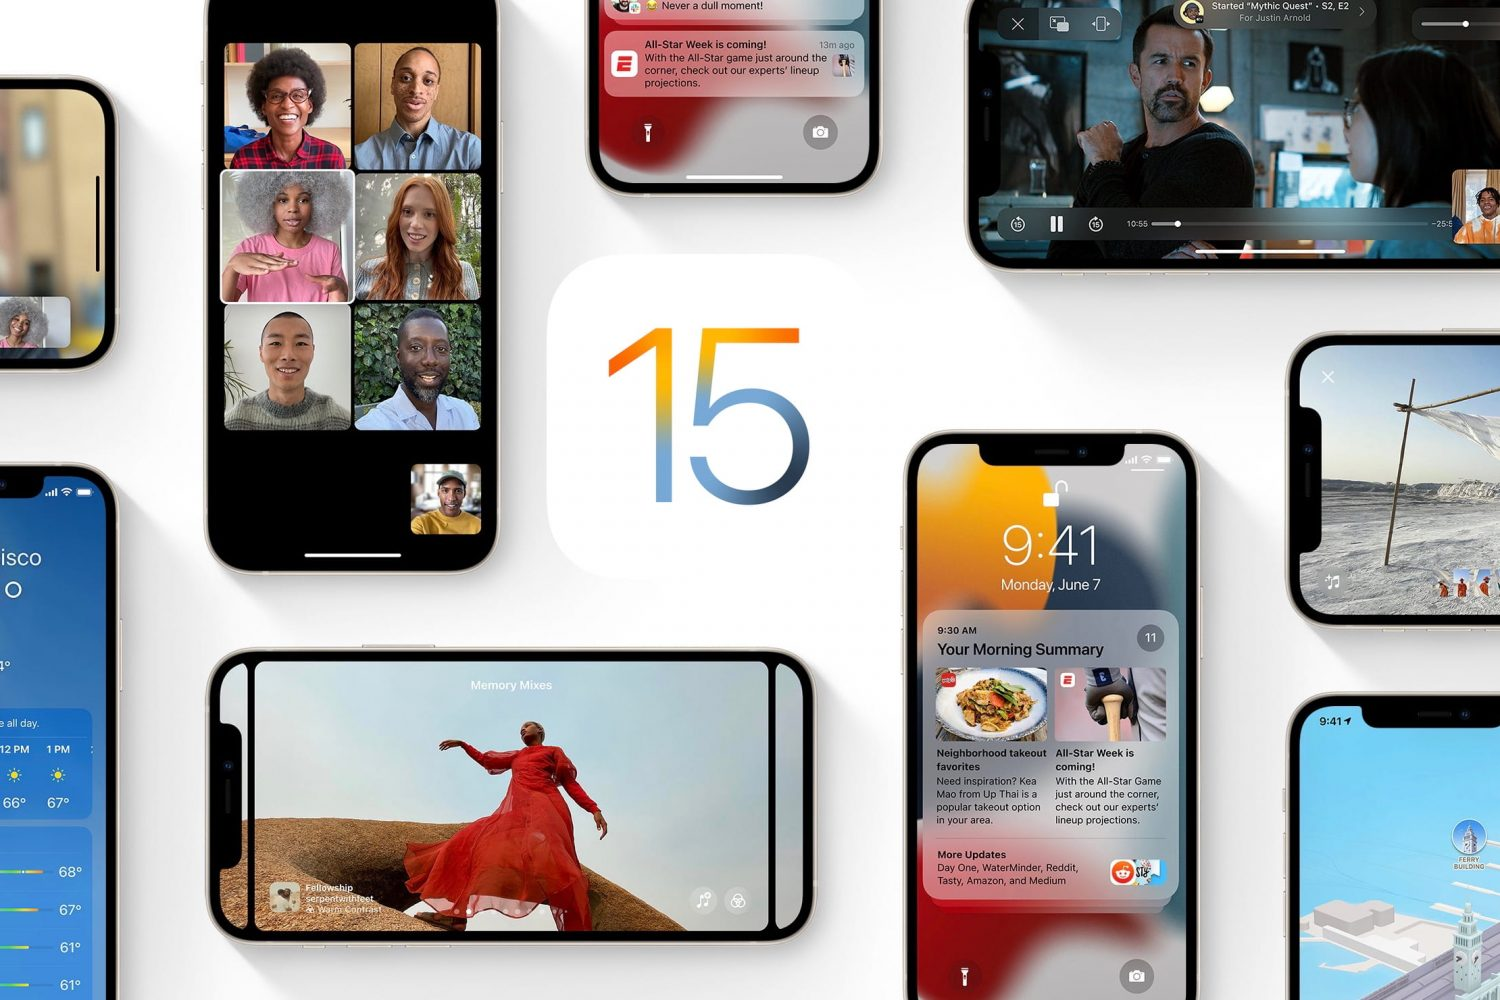 Apple's marketing image showing a bunch of iPhone and iPod touch devices showcasing various iOS 15 features